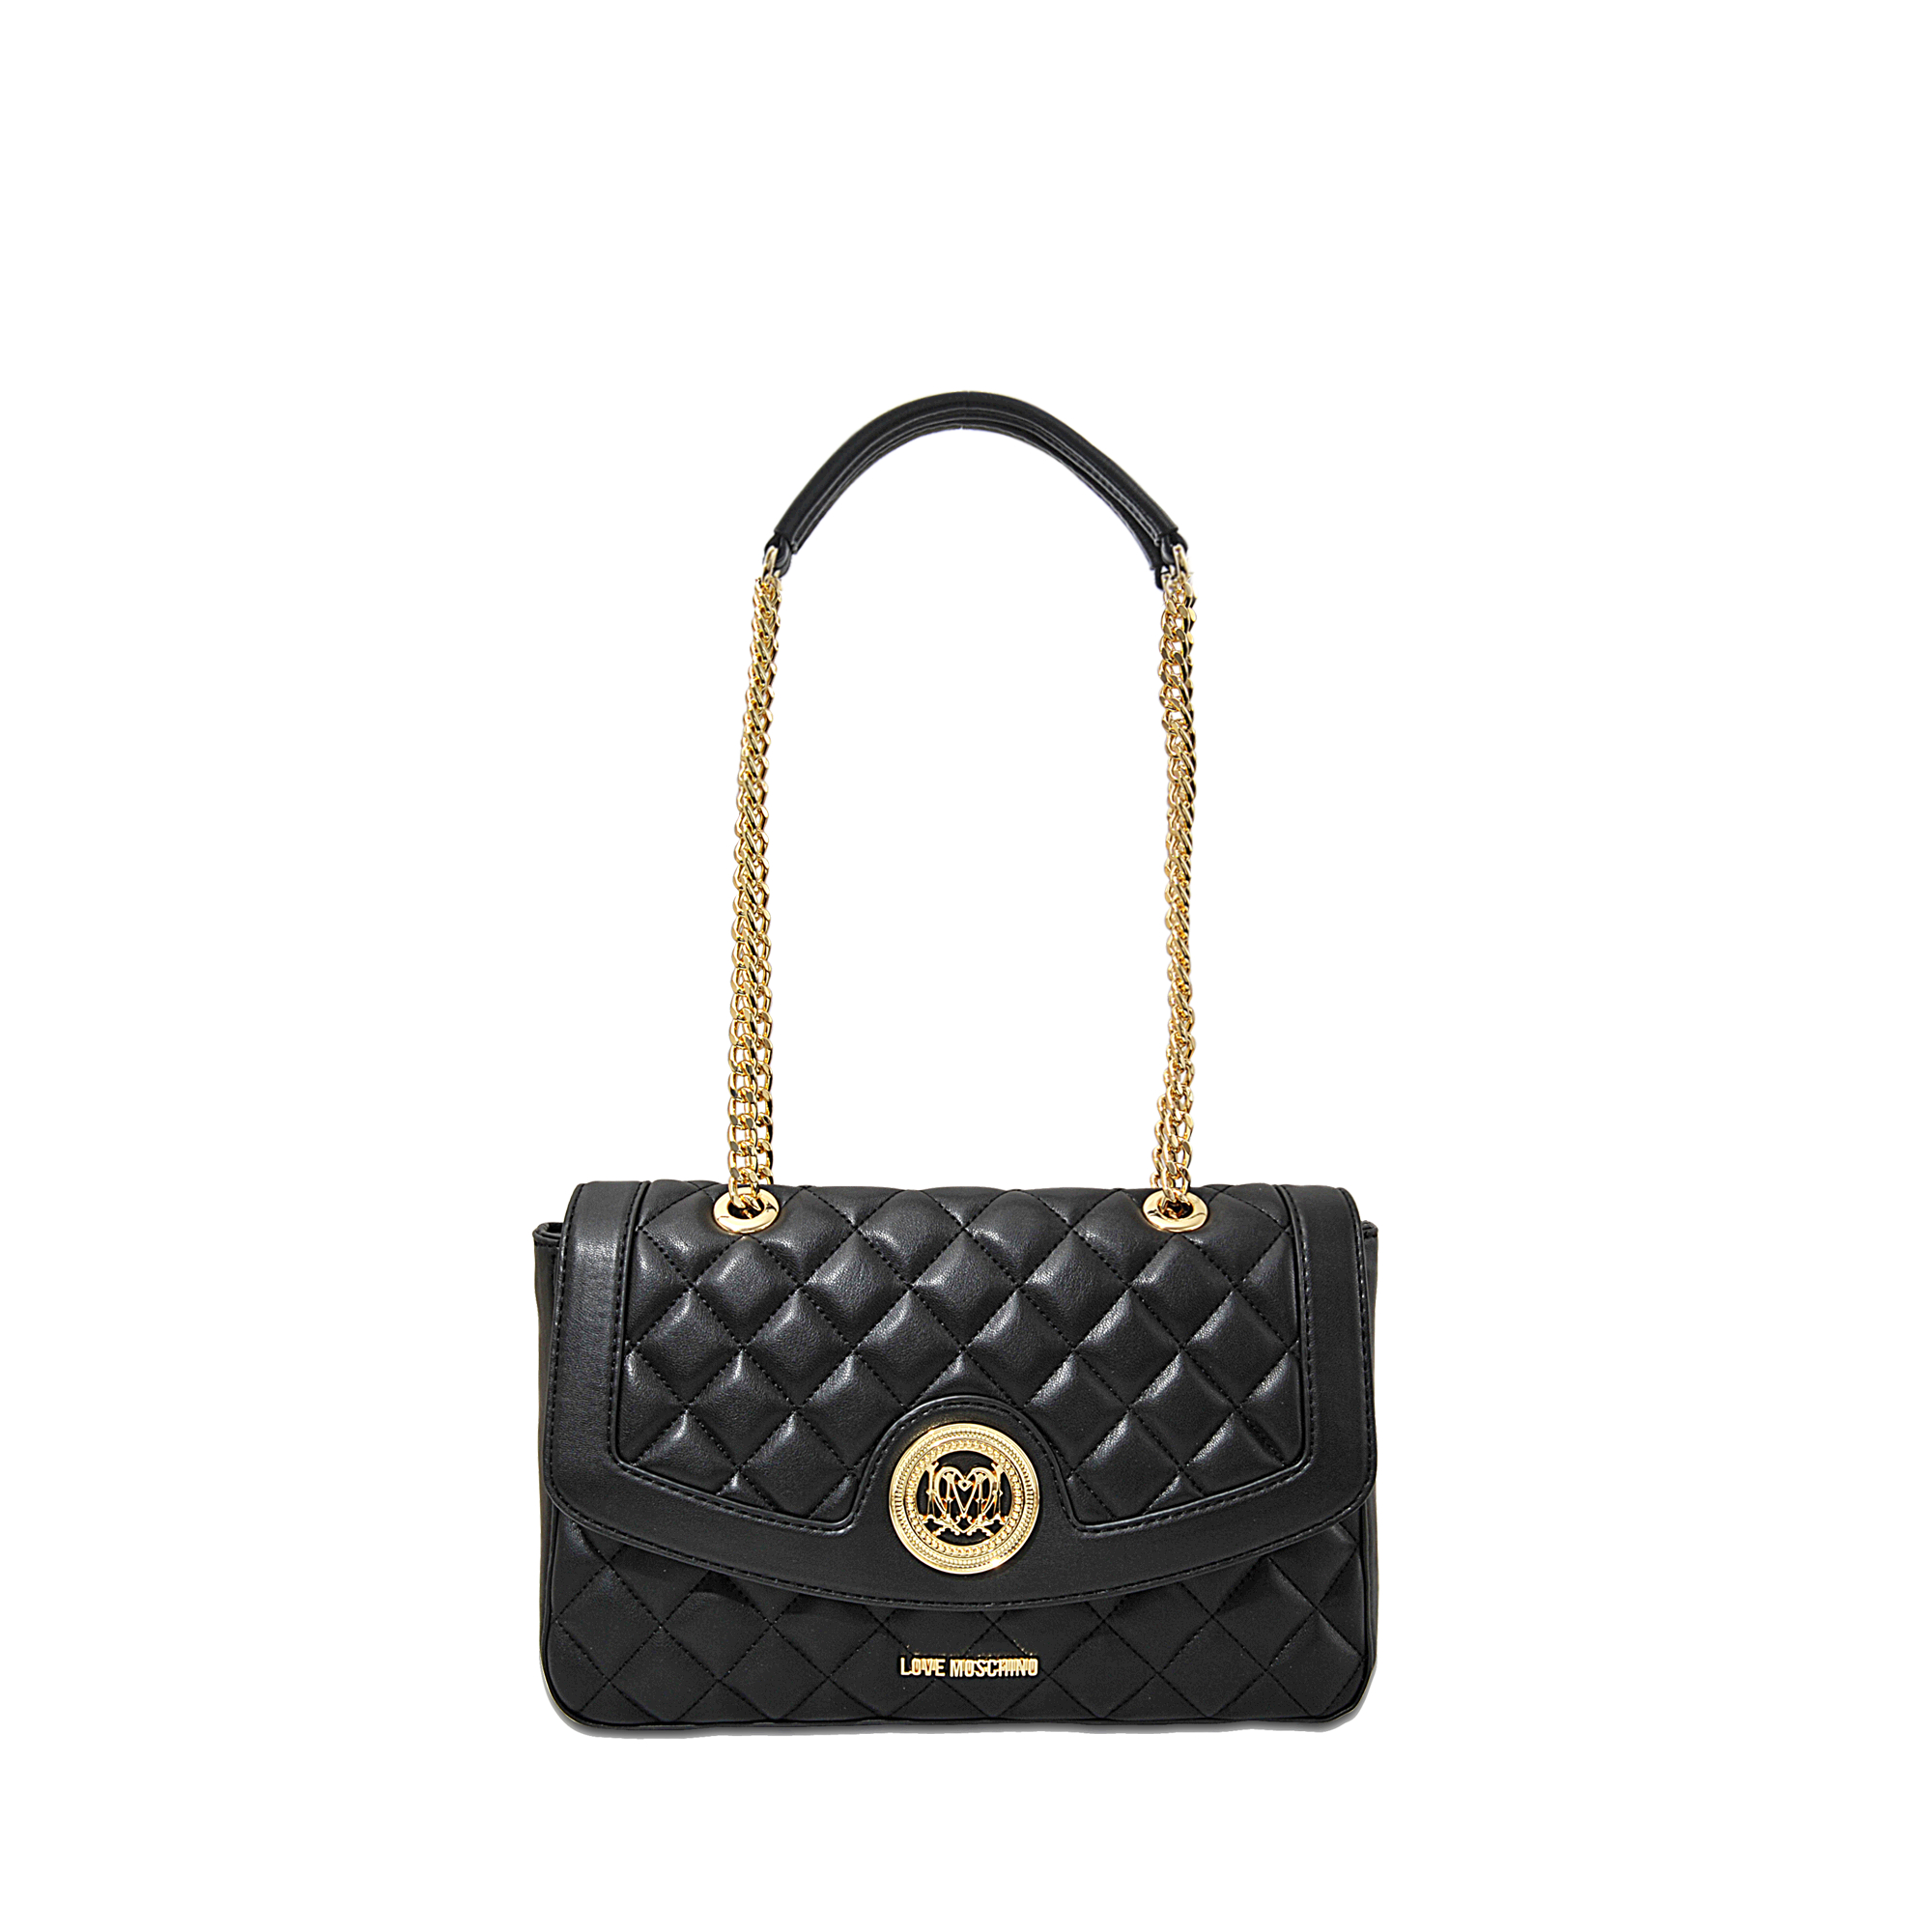 92a5b0cbc36 Love Moschino Super Quilted Flap Bag in Black - Lyst